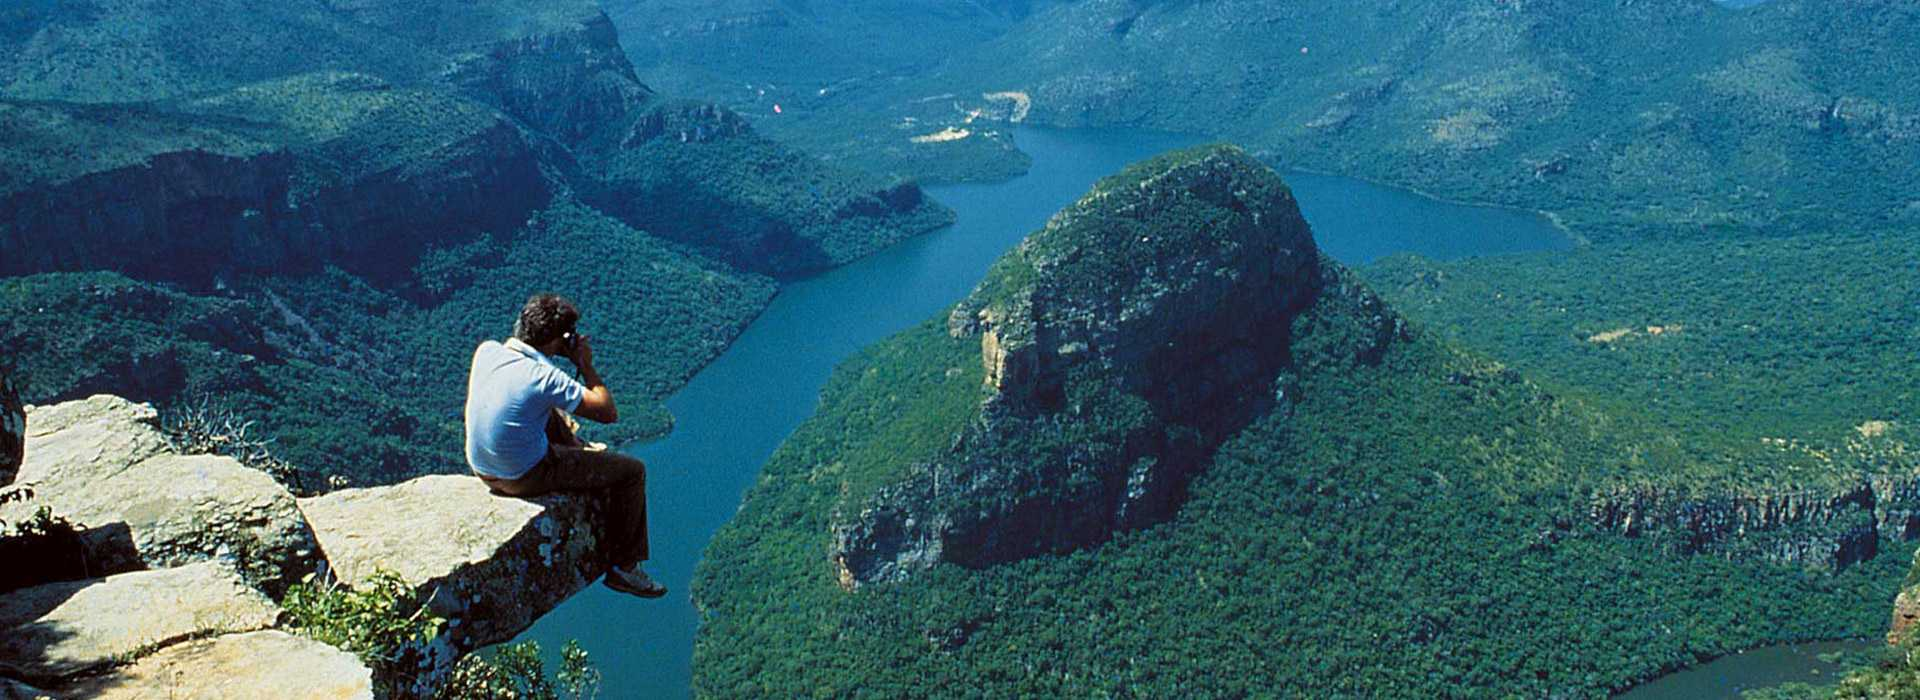 Man Photographing Blyde River Canyon